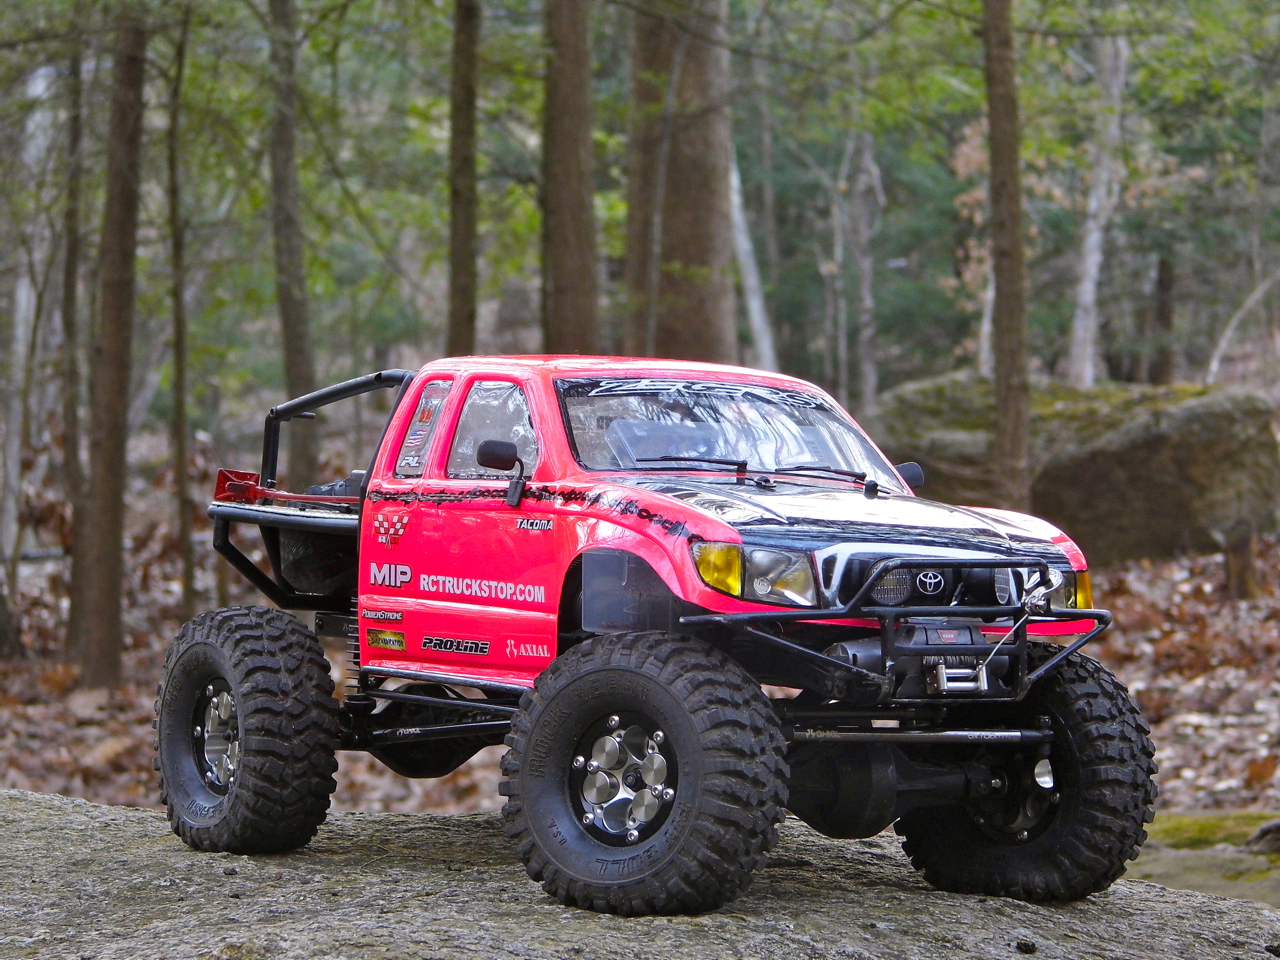 Pit Bull Rock Beast 1 9 Tire Review Rc Truck Stop